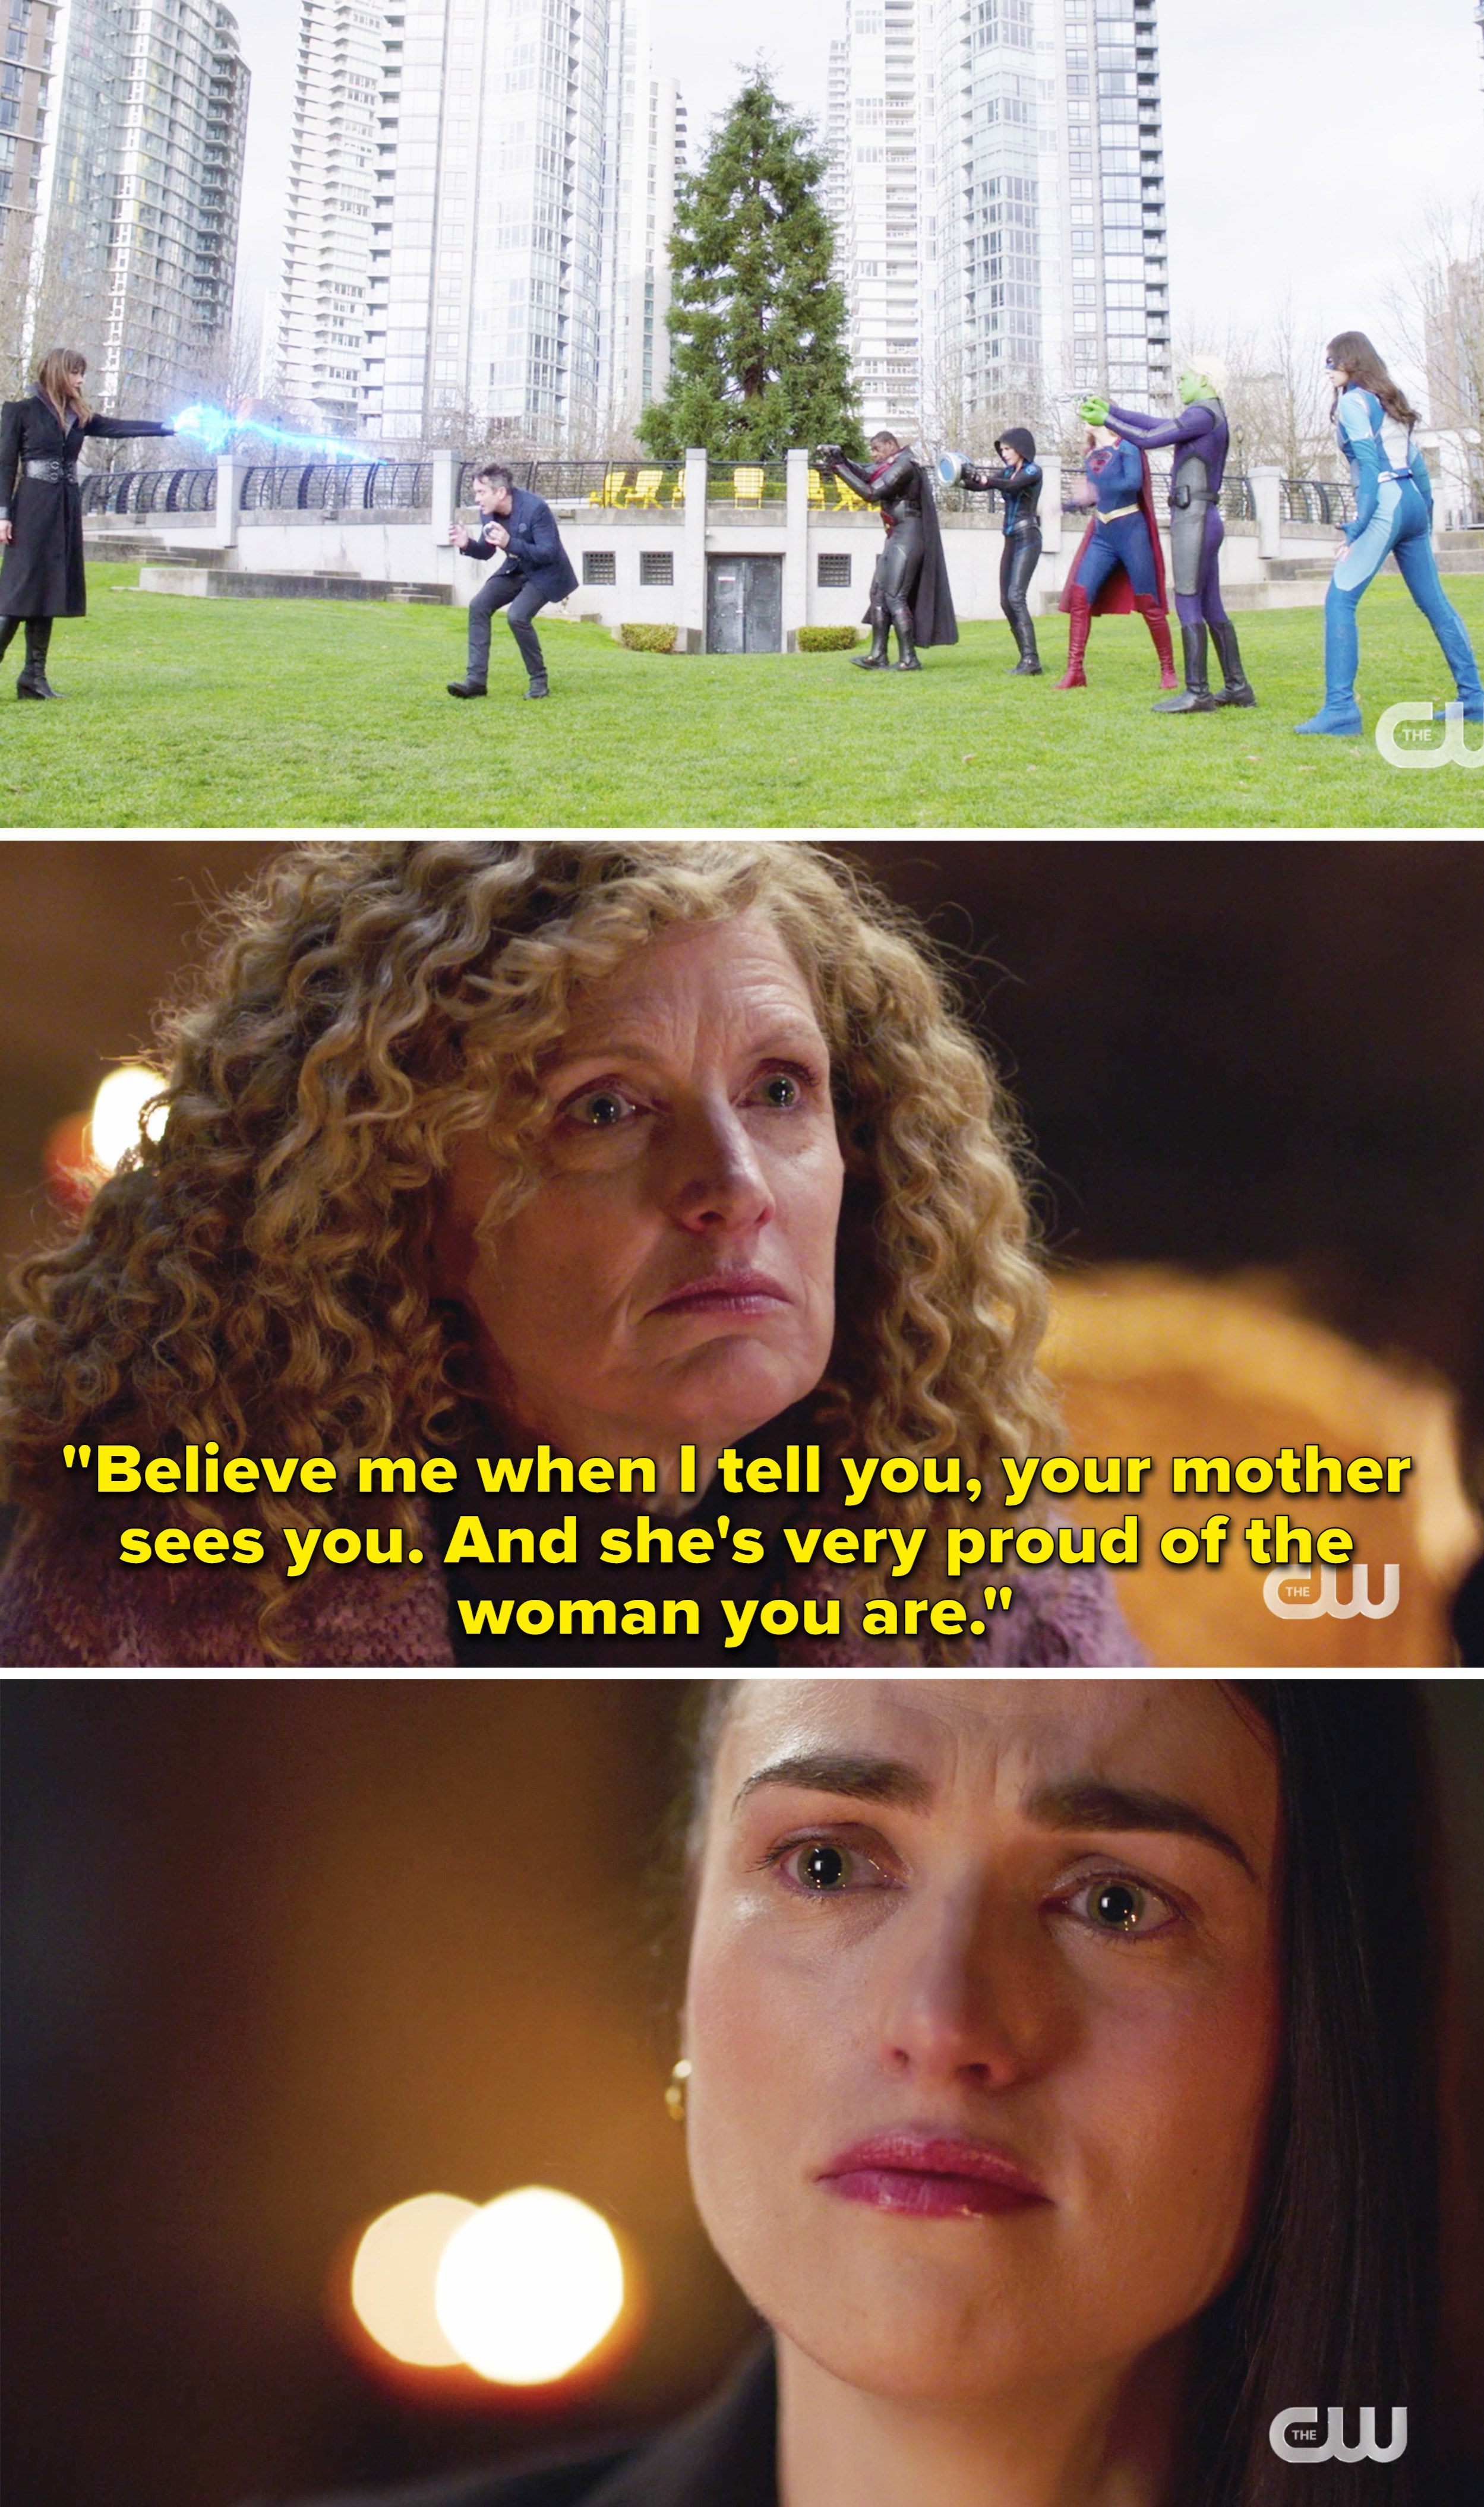 Lena hearing that her mother is proud of the woman she became